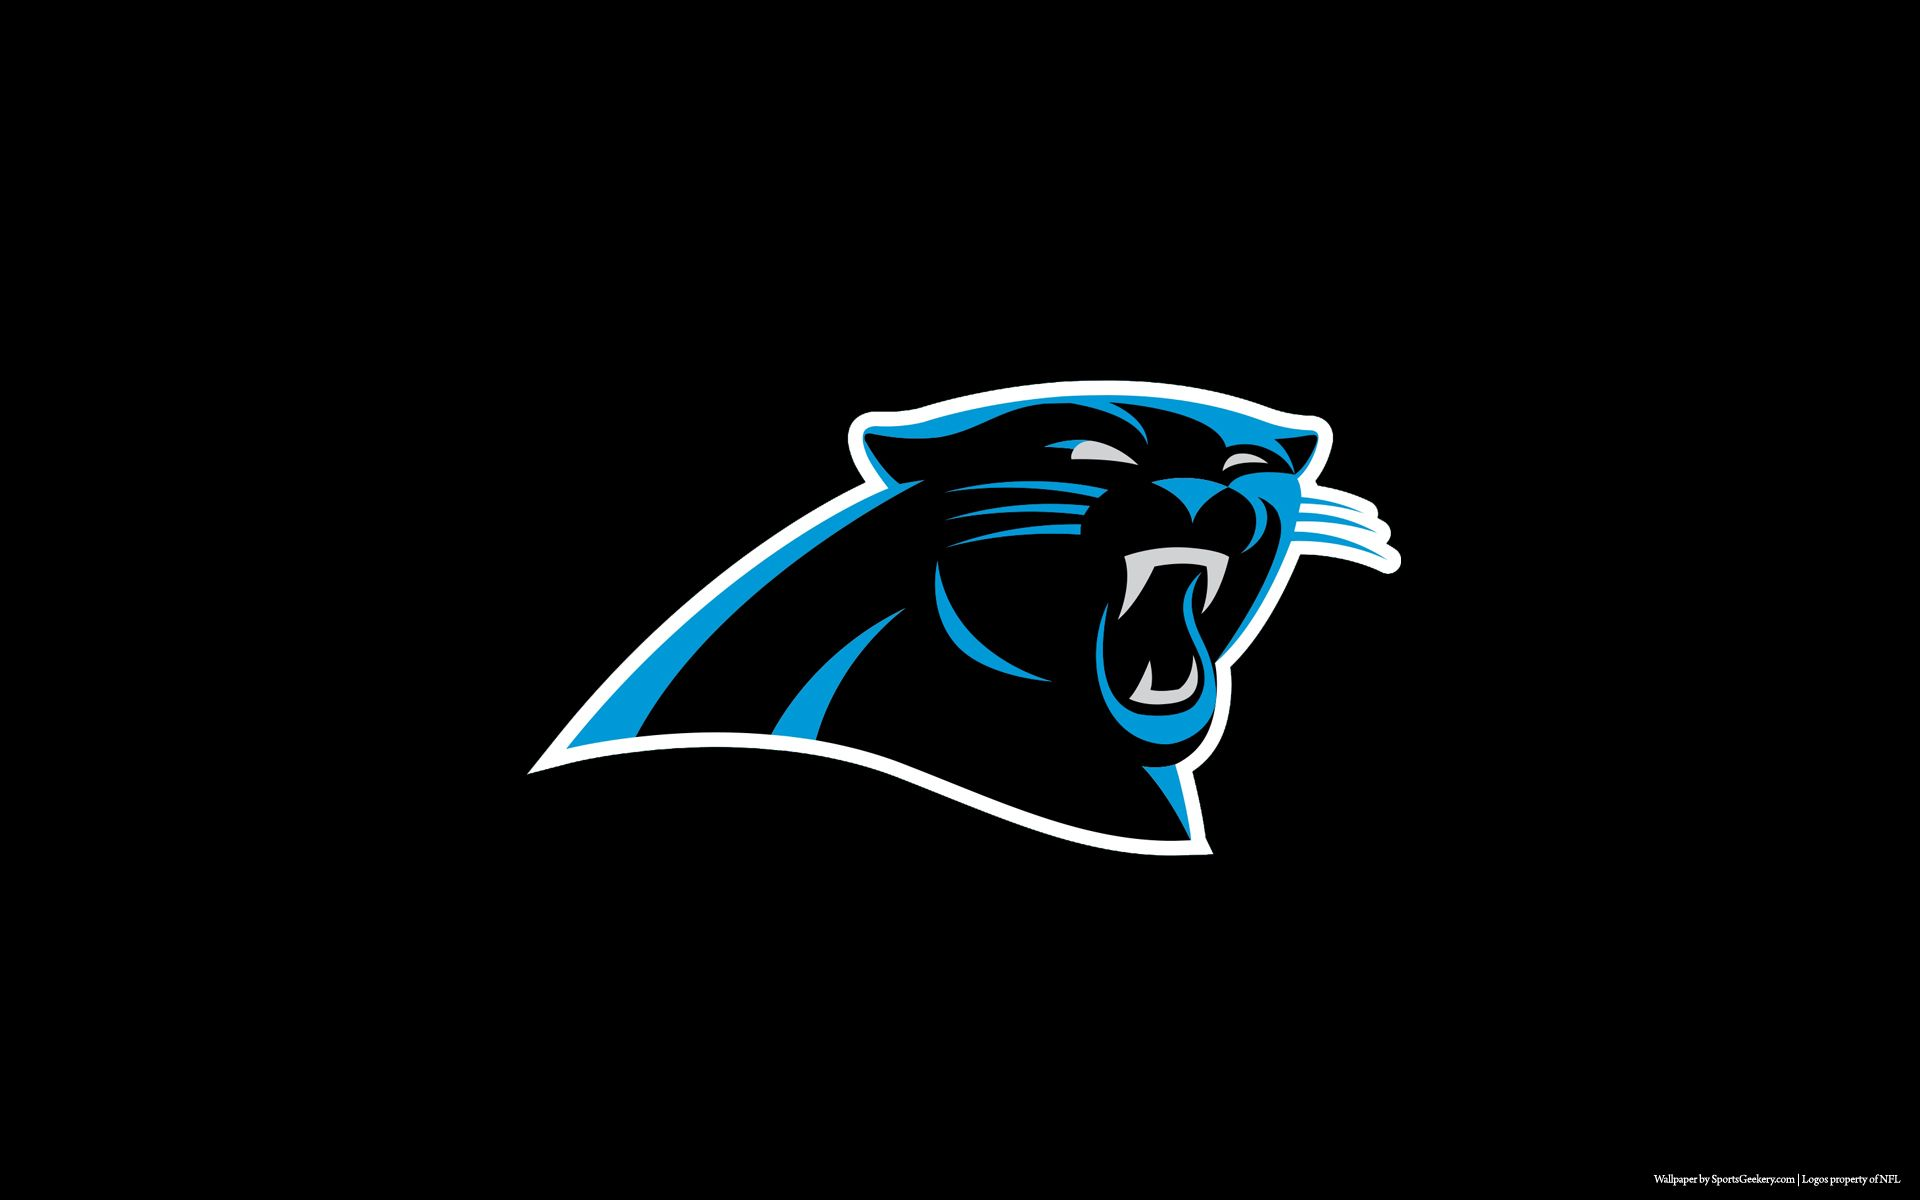 Hd wallpaper sites - Carolina Panthers Wallpaper By On